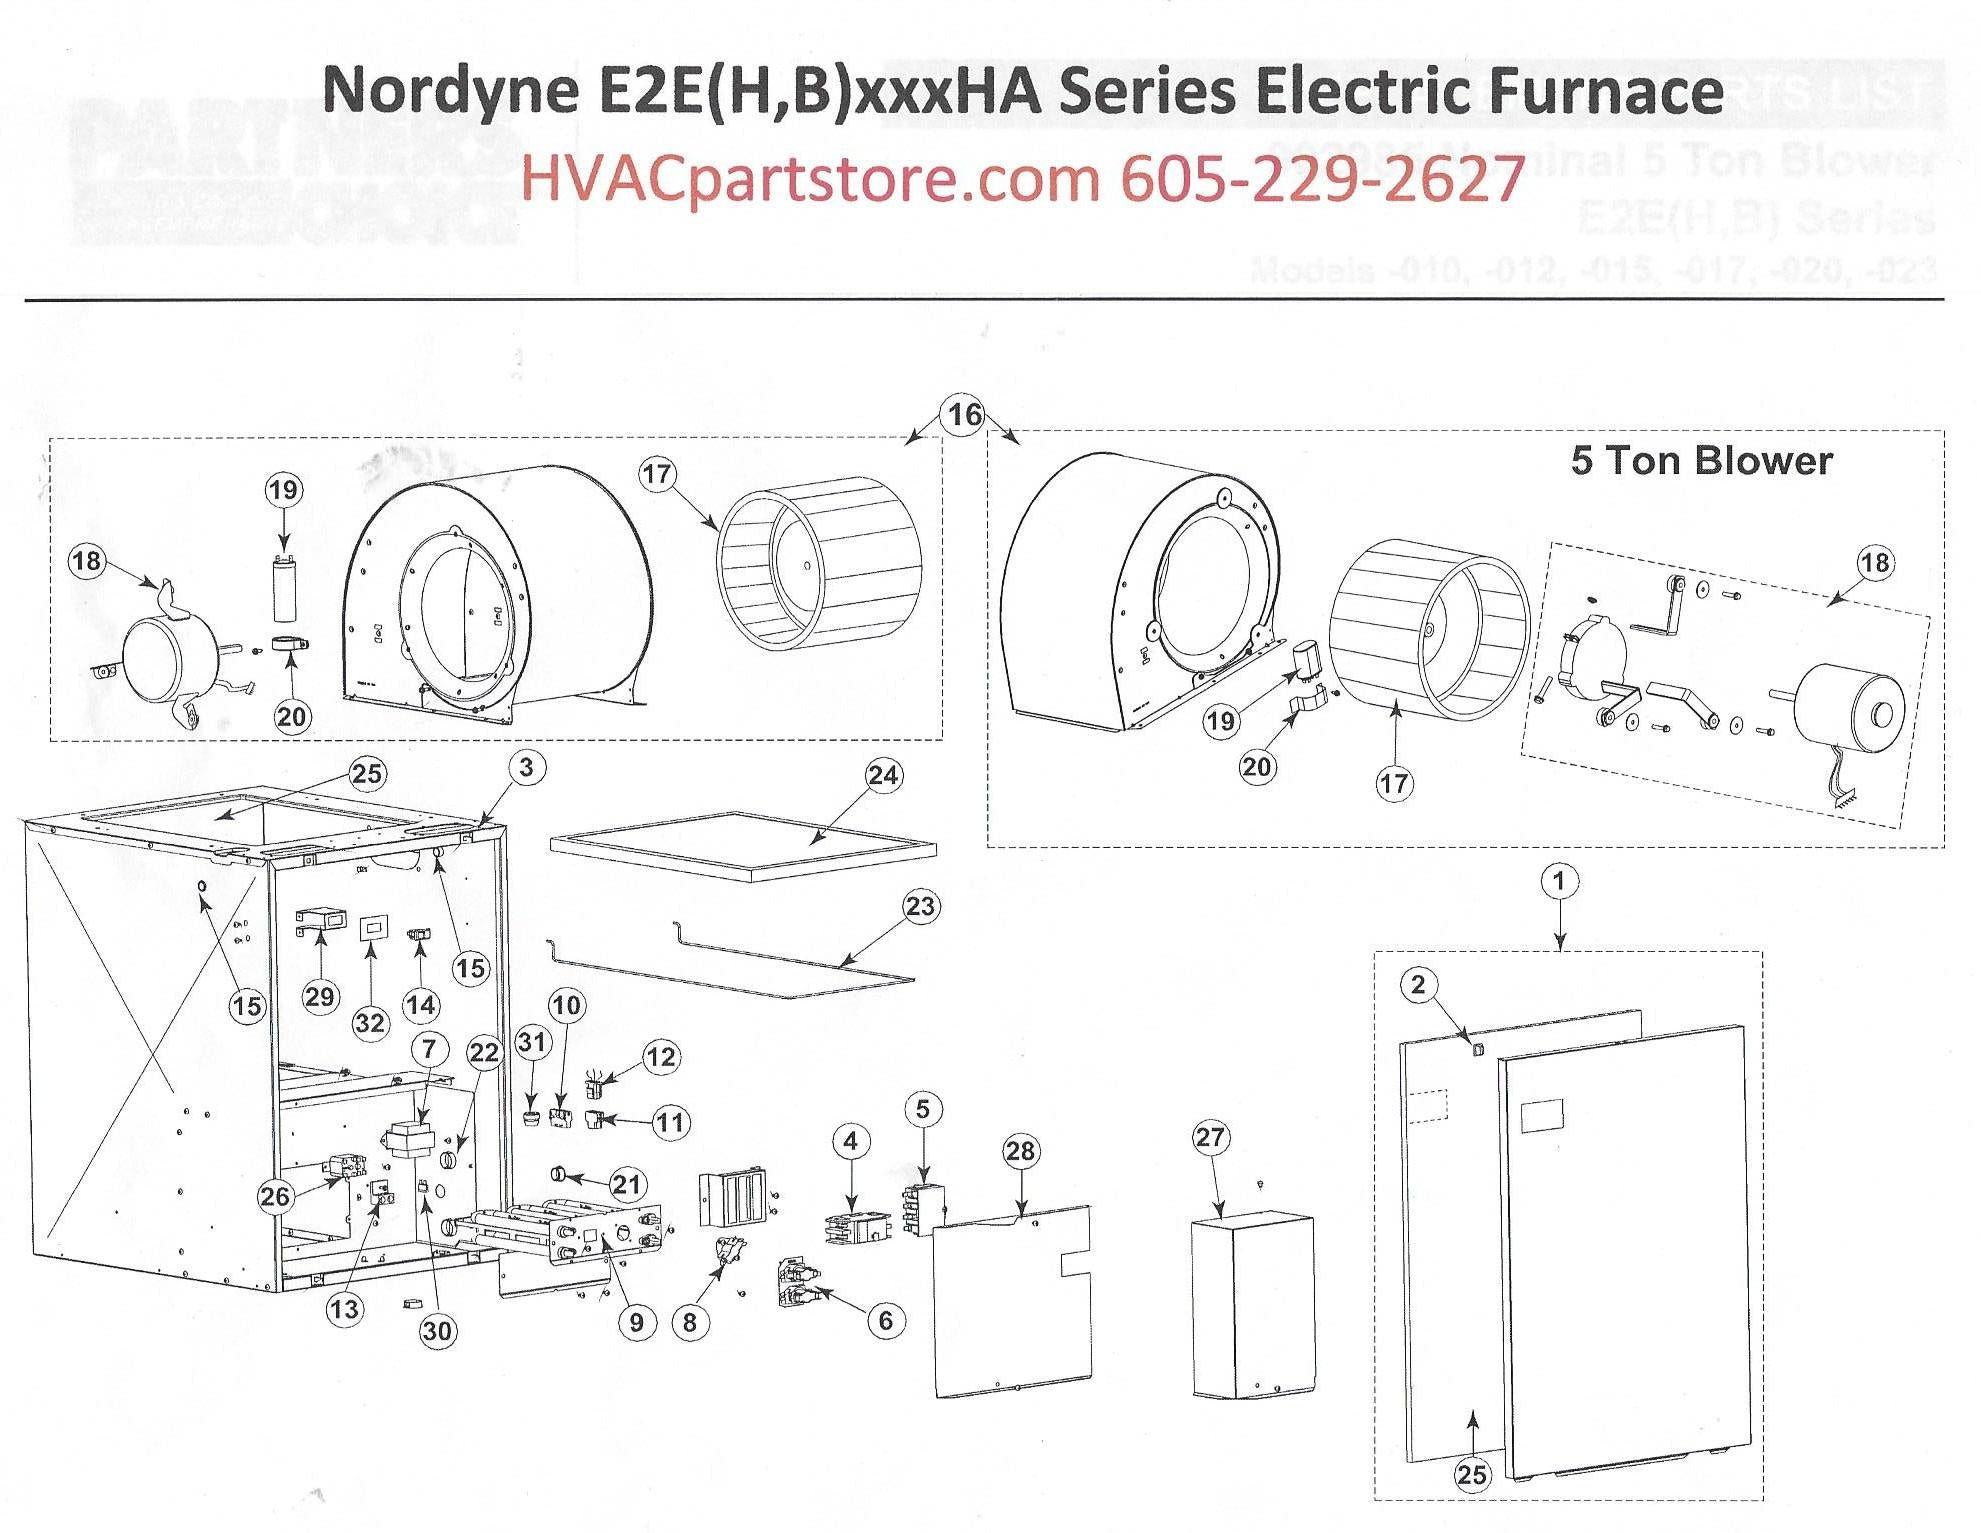 E2HADiagram?12229575439927955546 e2eb010ha nordyne electric furnace parts hvacpartstore nordyne furnace wiring diagram at edmiracle.co